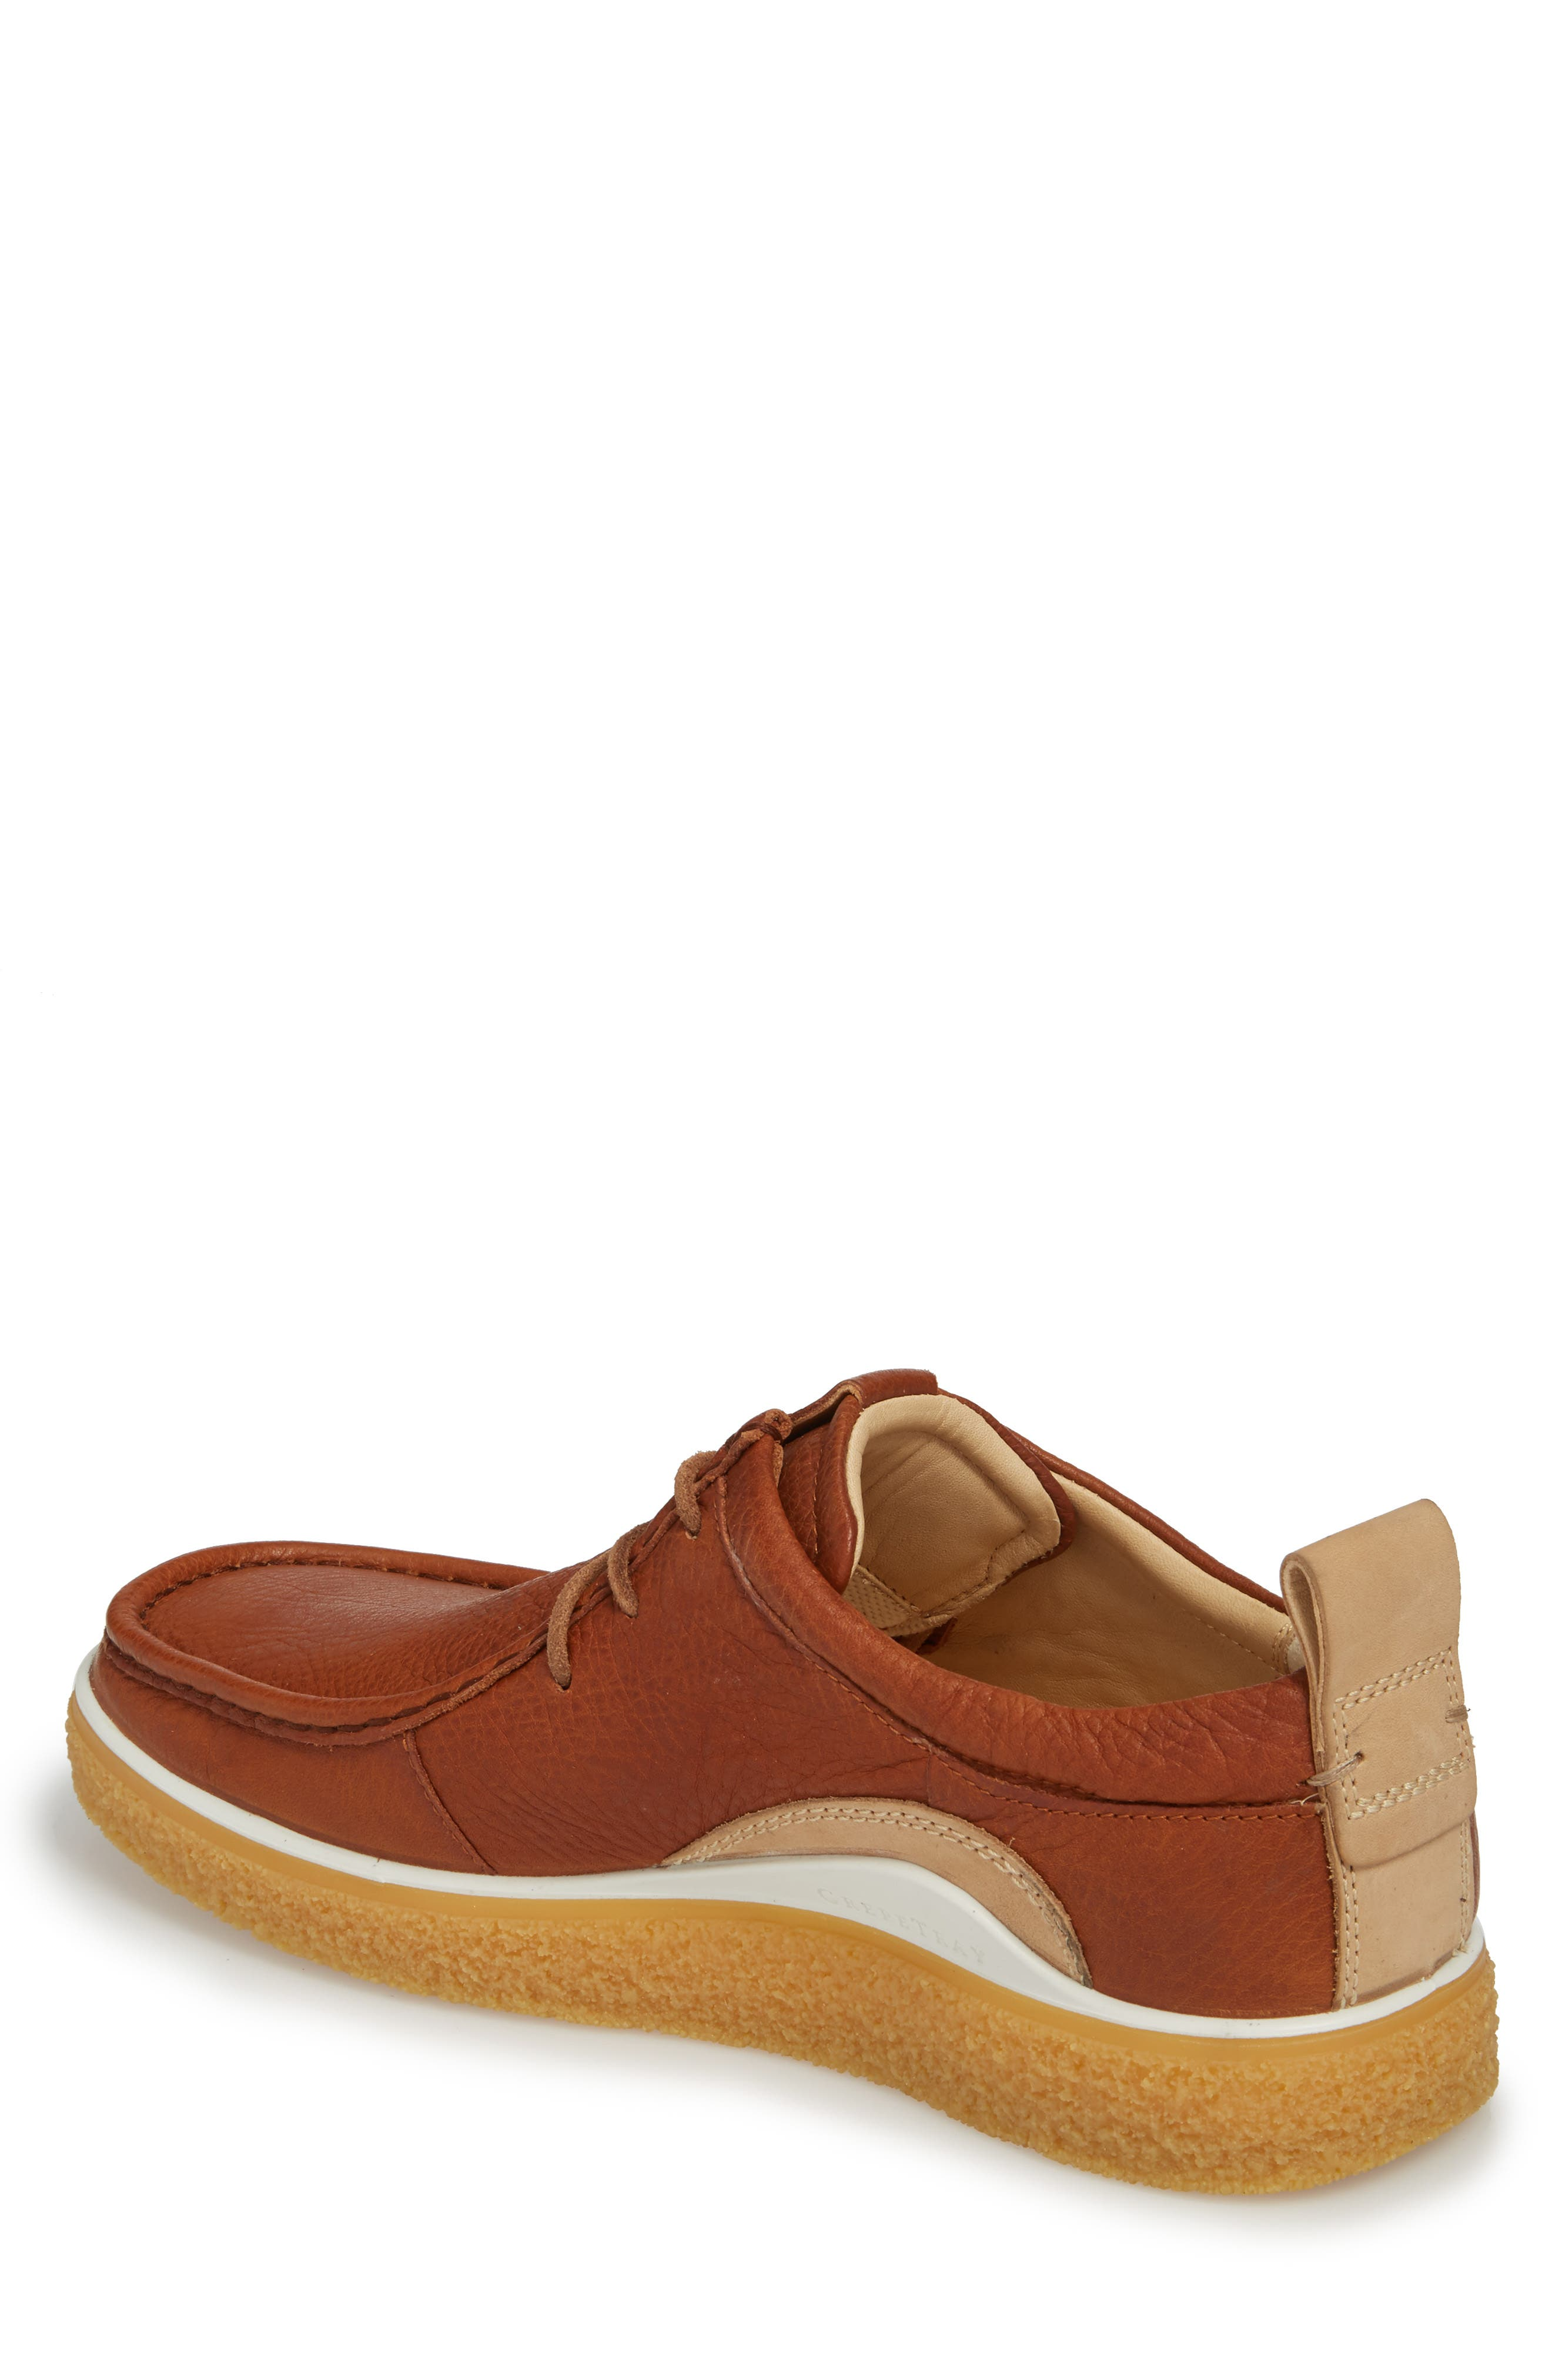 Crepetray Moc Toe Lace-Up,                             Alternate thumbnail 2, color,                             Lion Leather